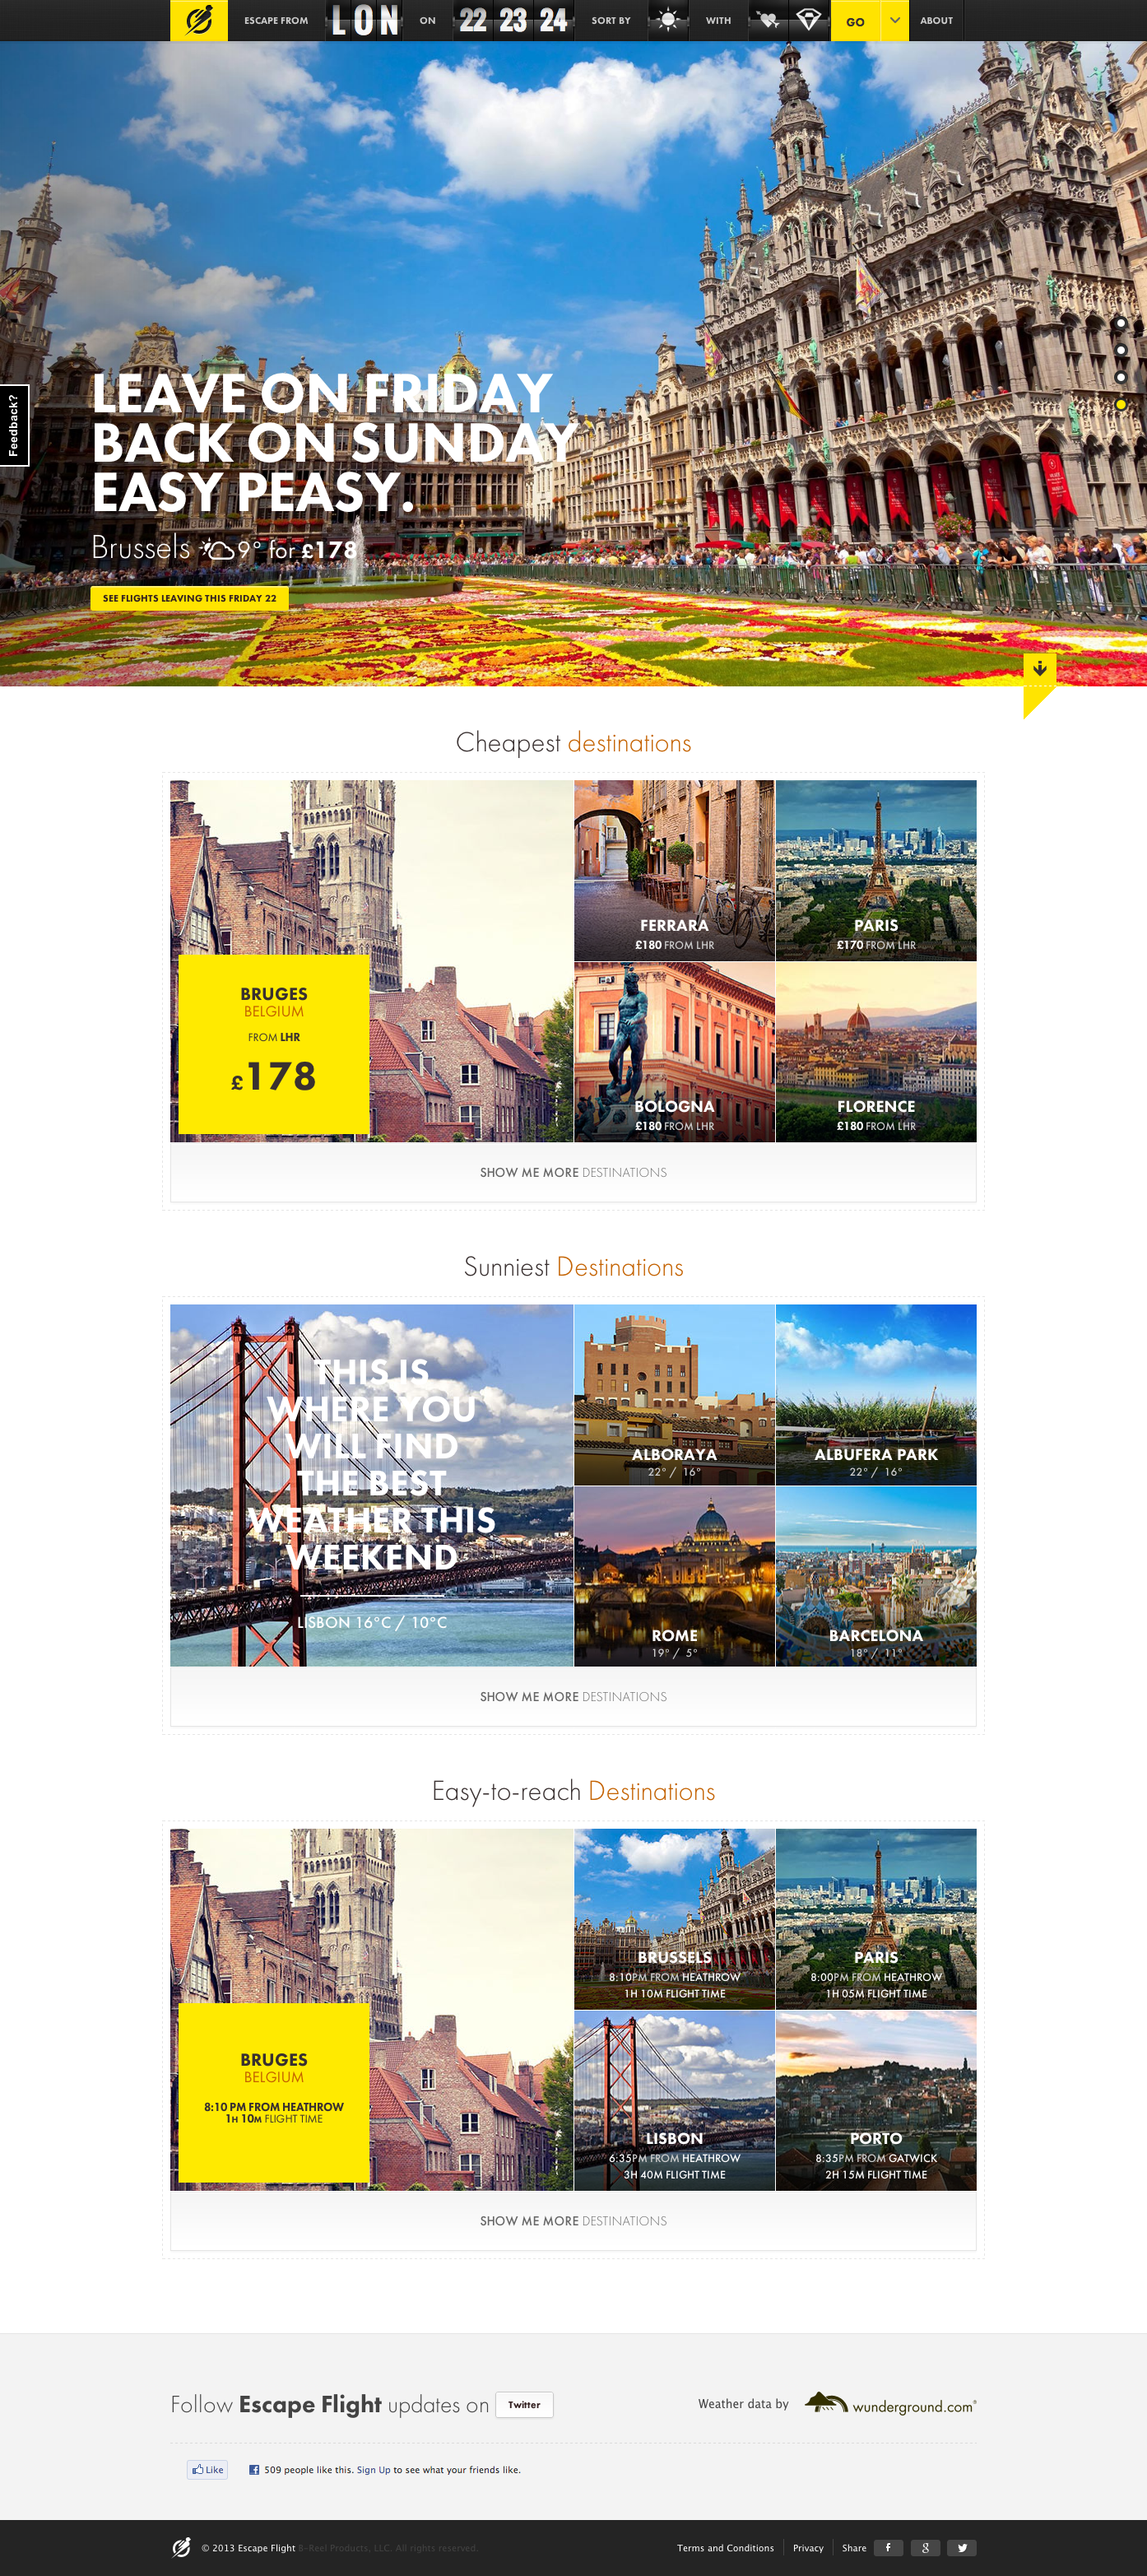 22 inspiring travel website designs you 39 ll love - Home design app used on love it or list it ...